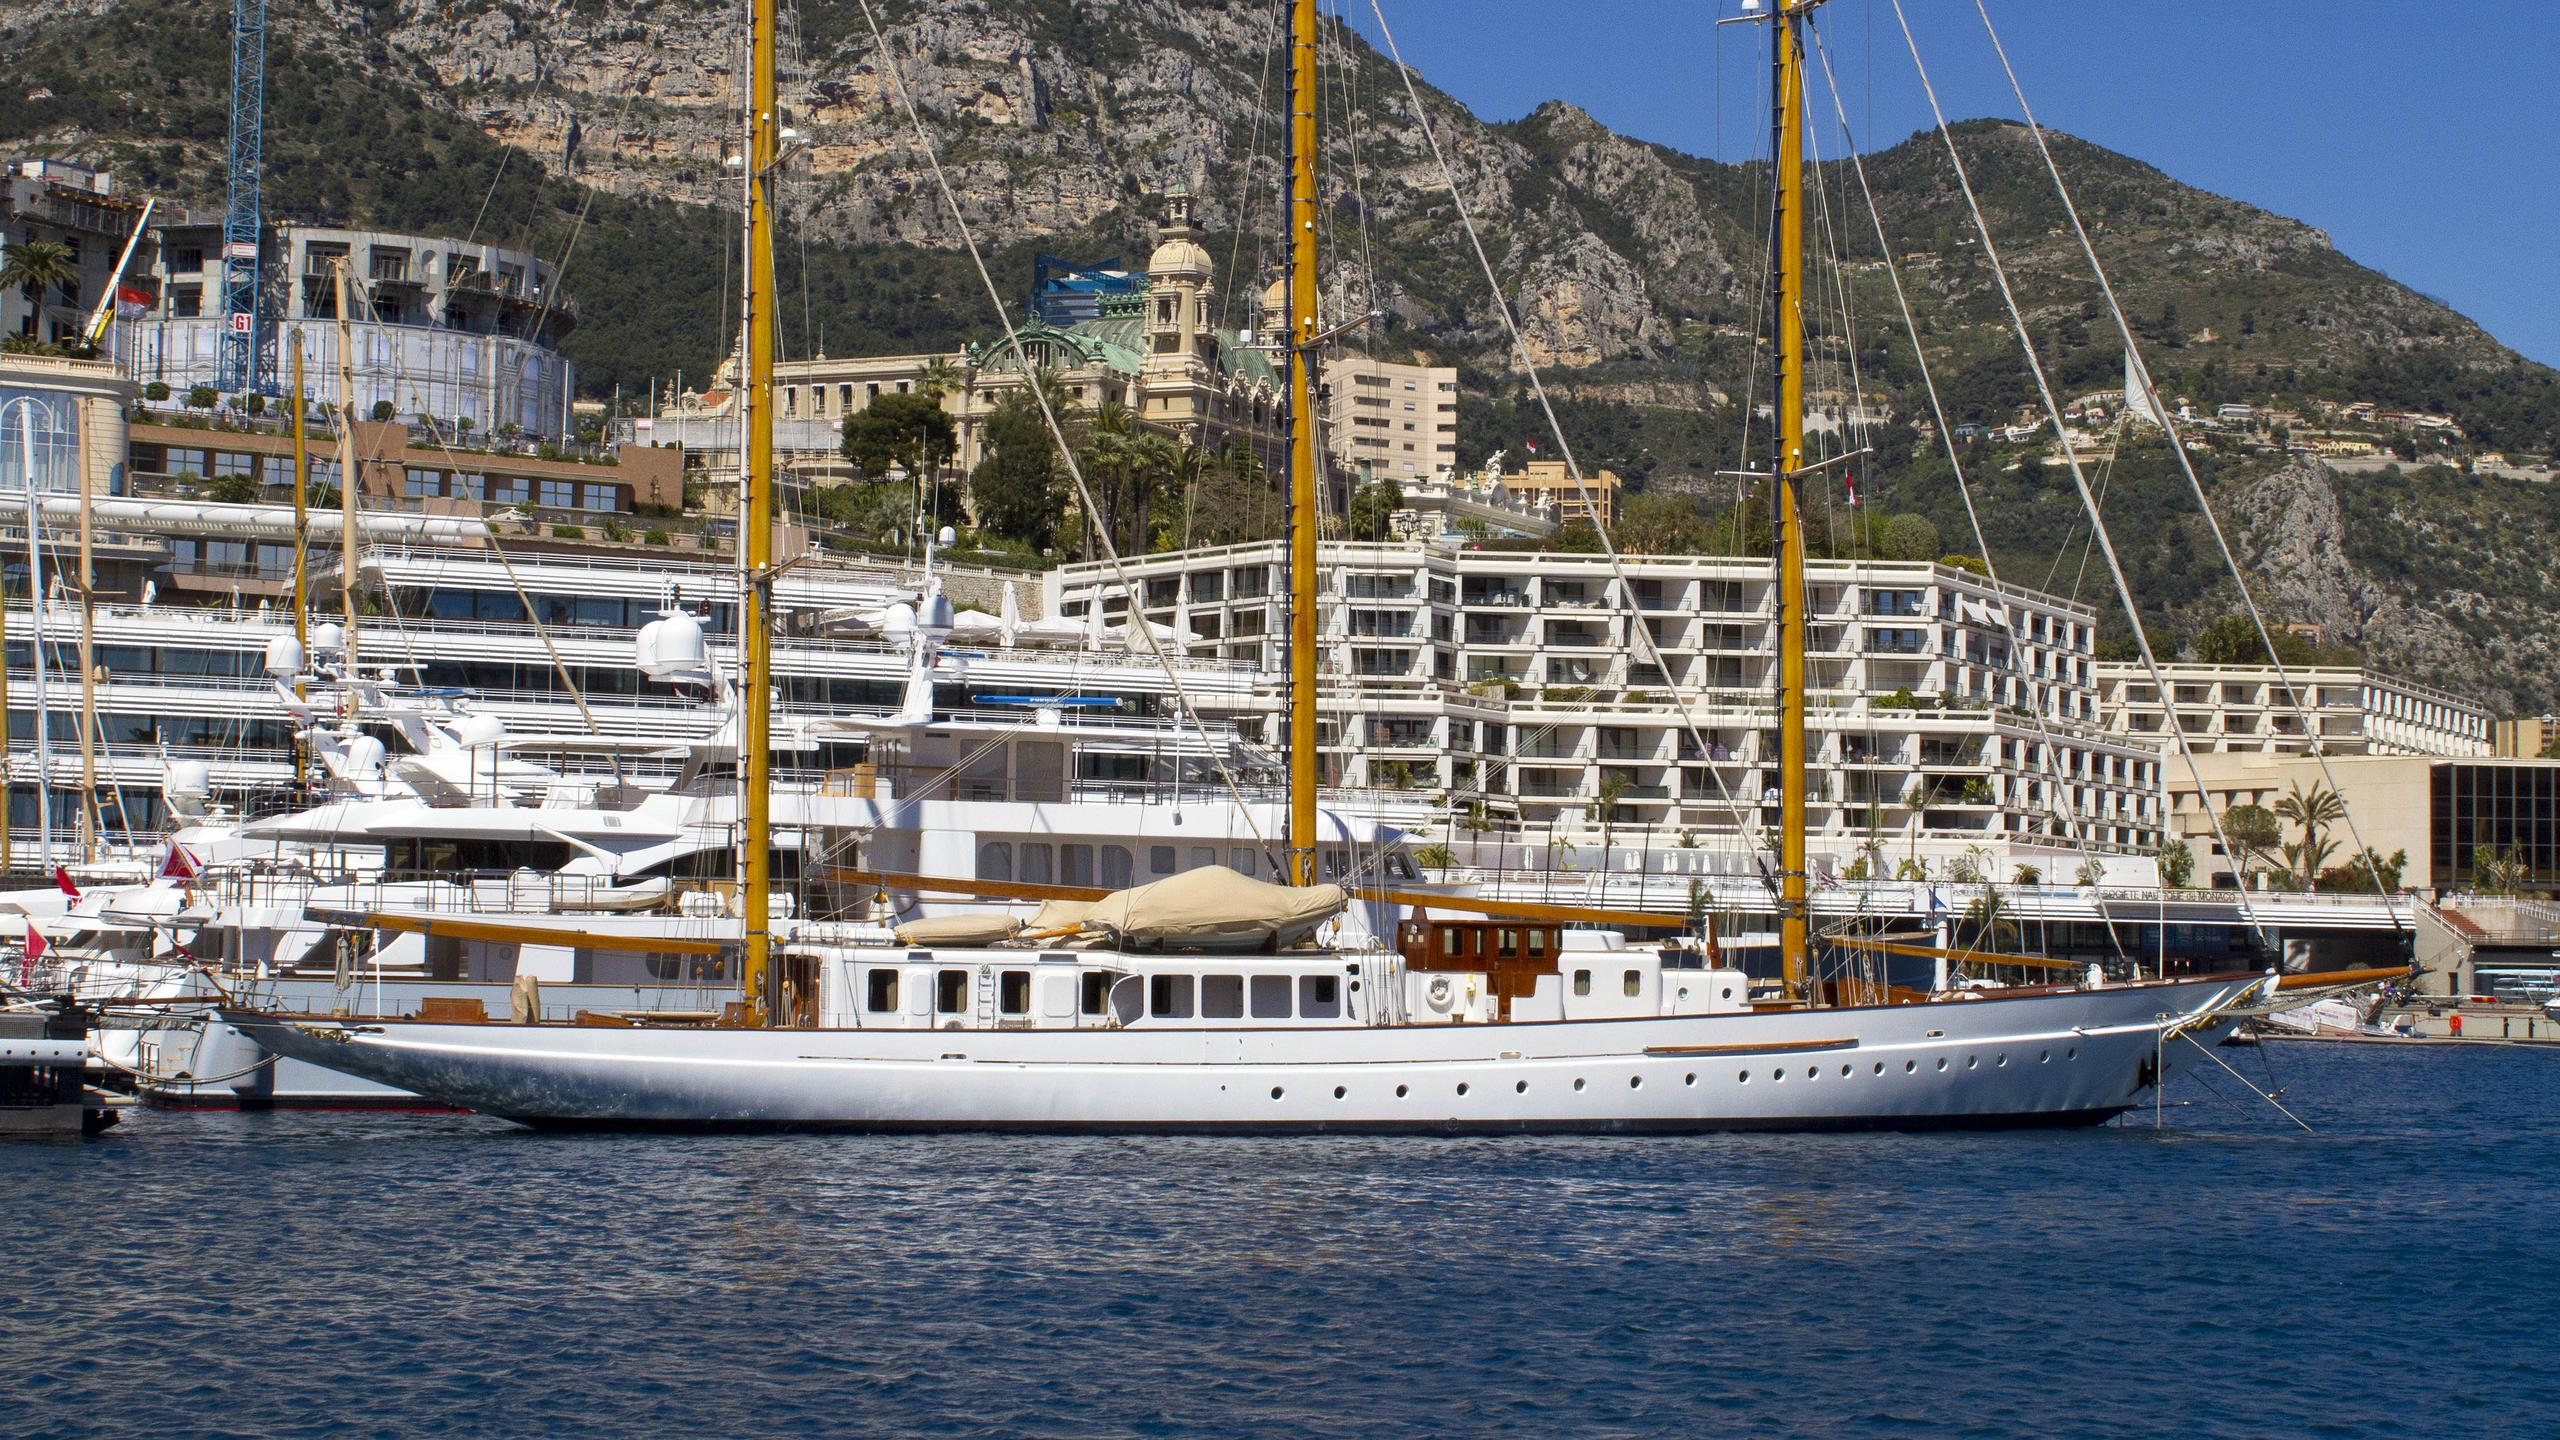 fleurtje-sailing-yacht-de-vries-lentsch-1960-57m-profile-after-refit